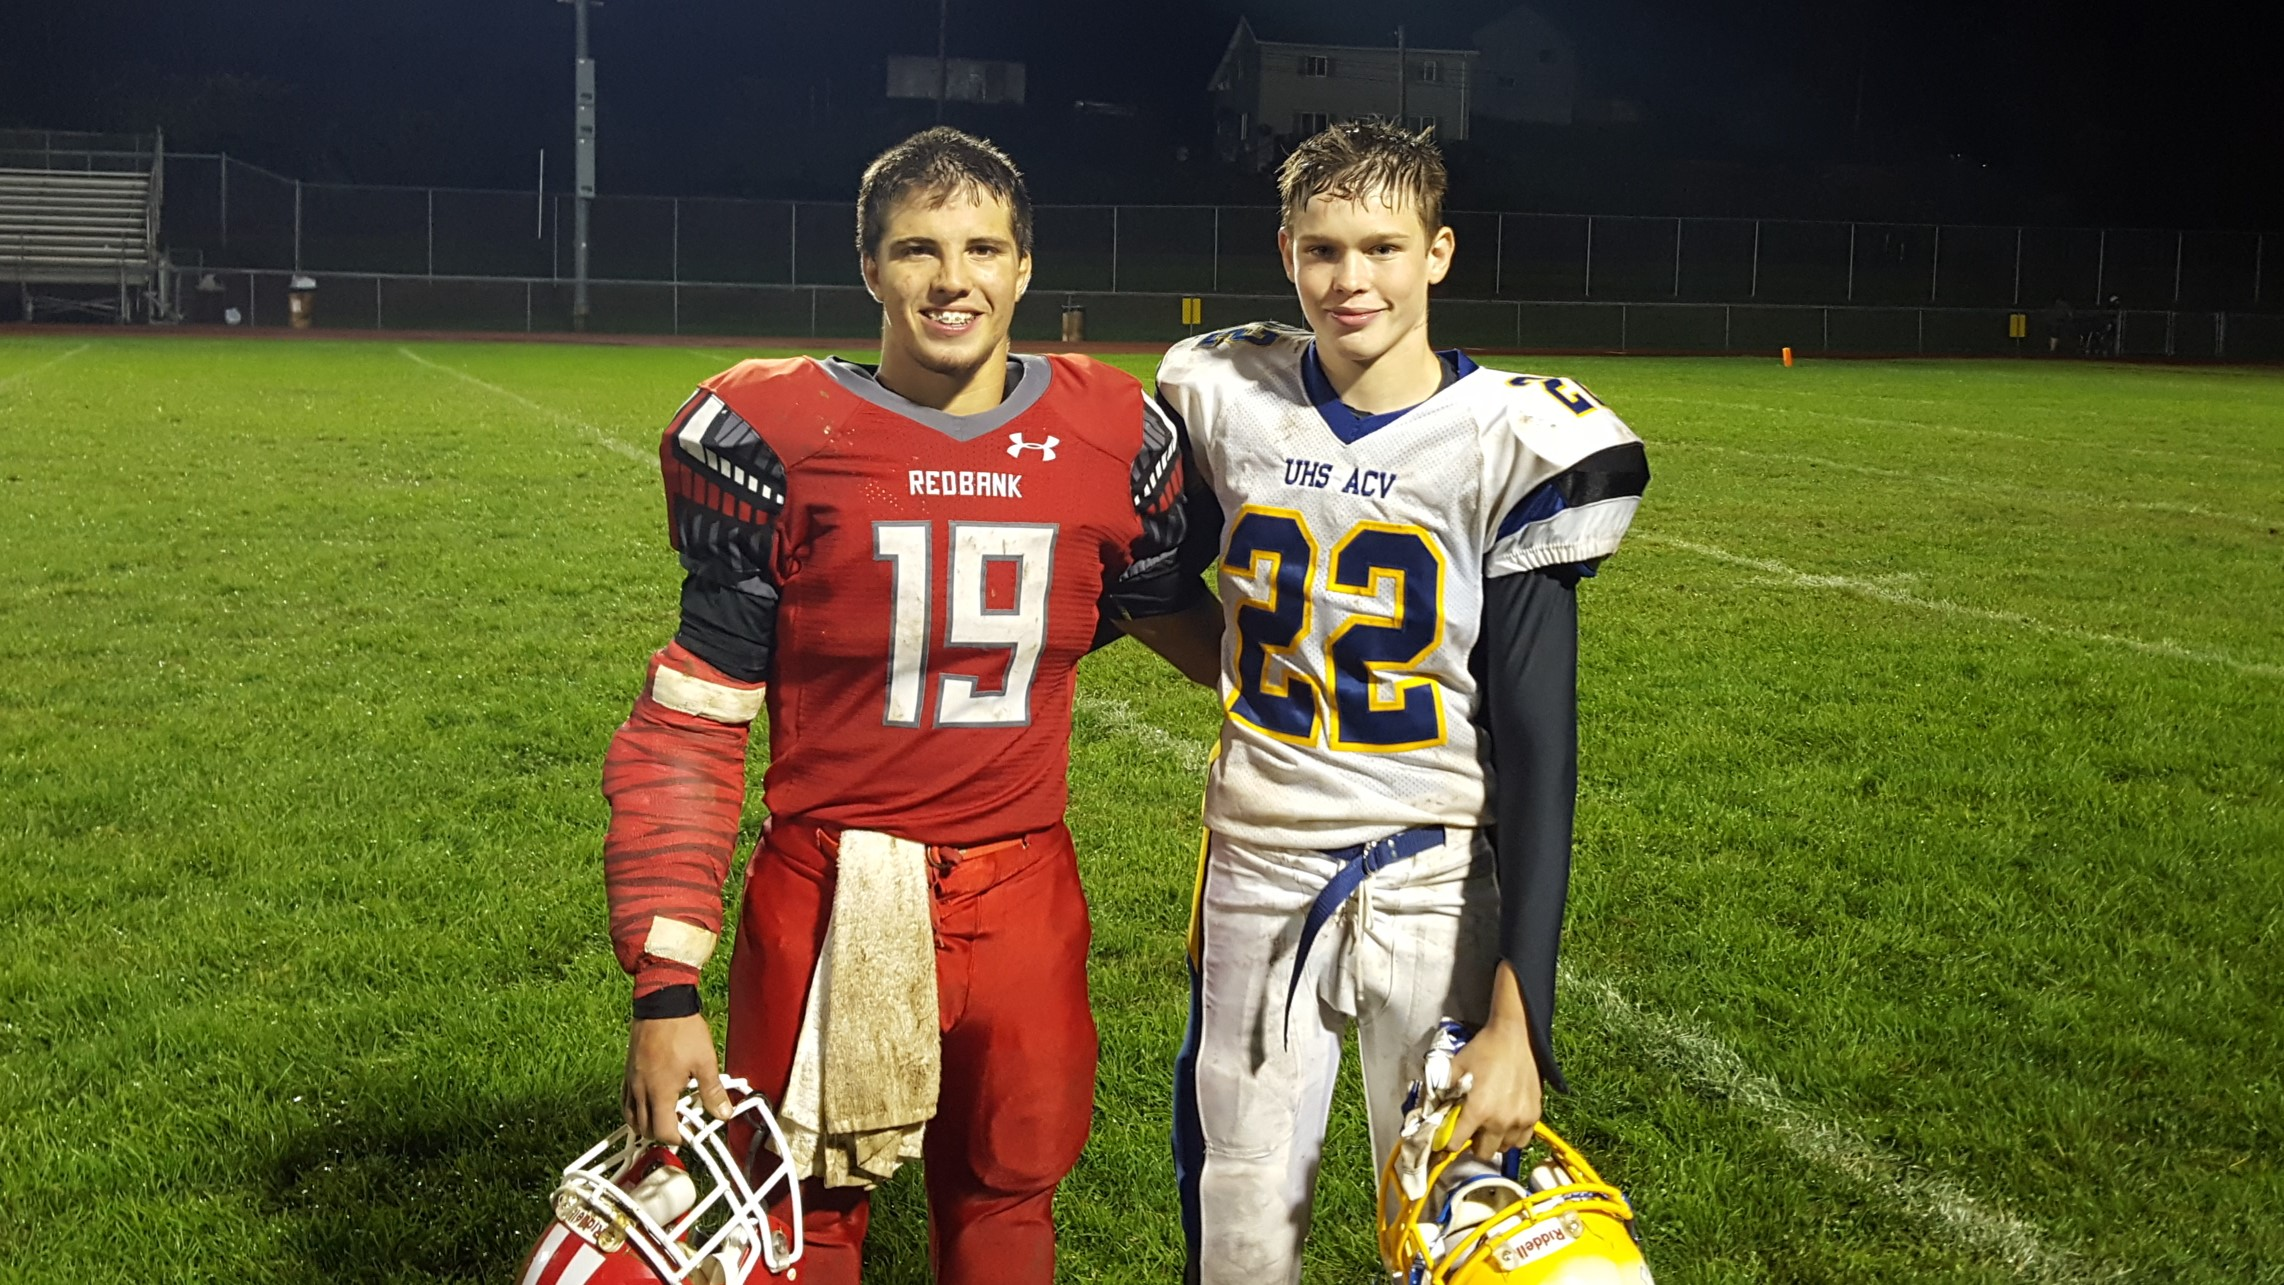 Hager Paving Players of the Game - Colton Mohney and Duncan